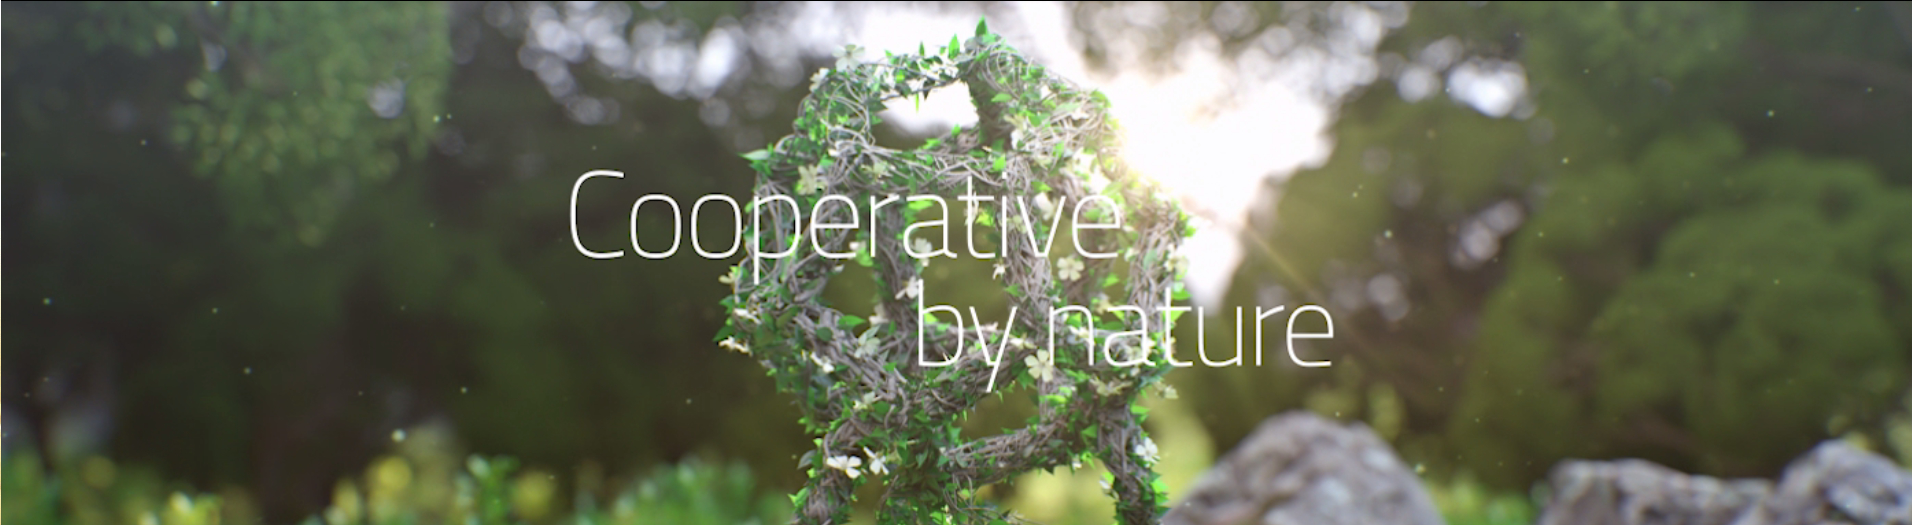 Cooperative by nature_Movie